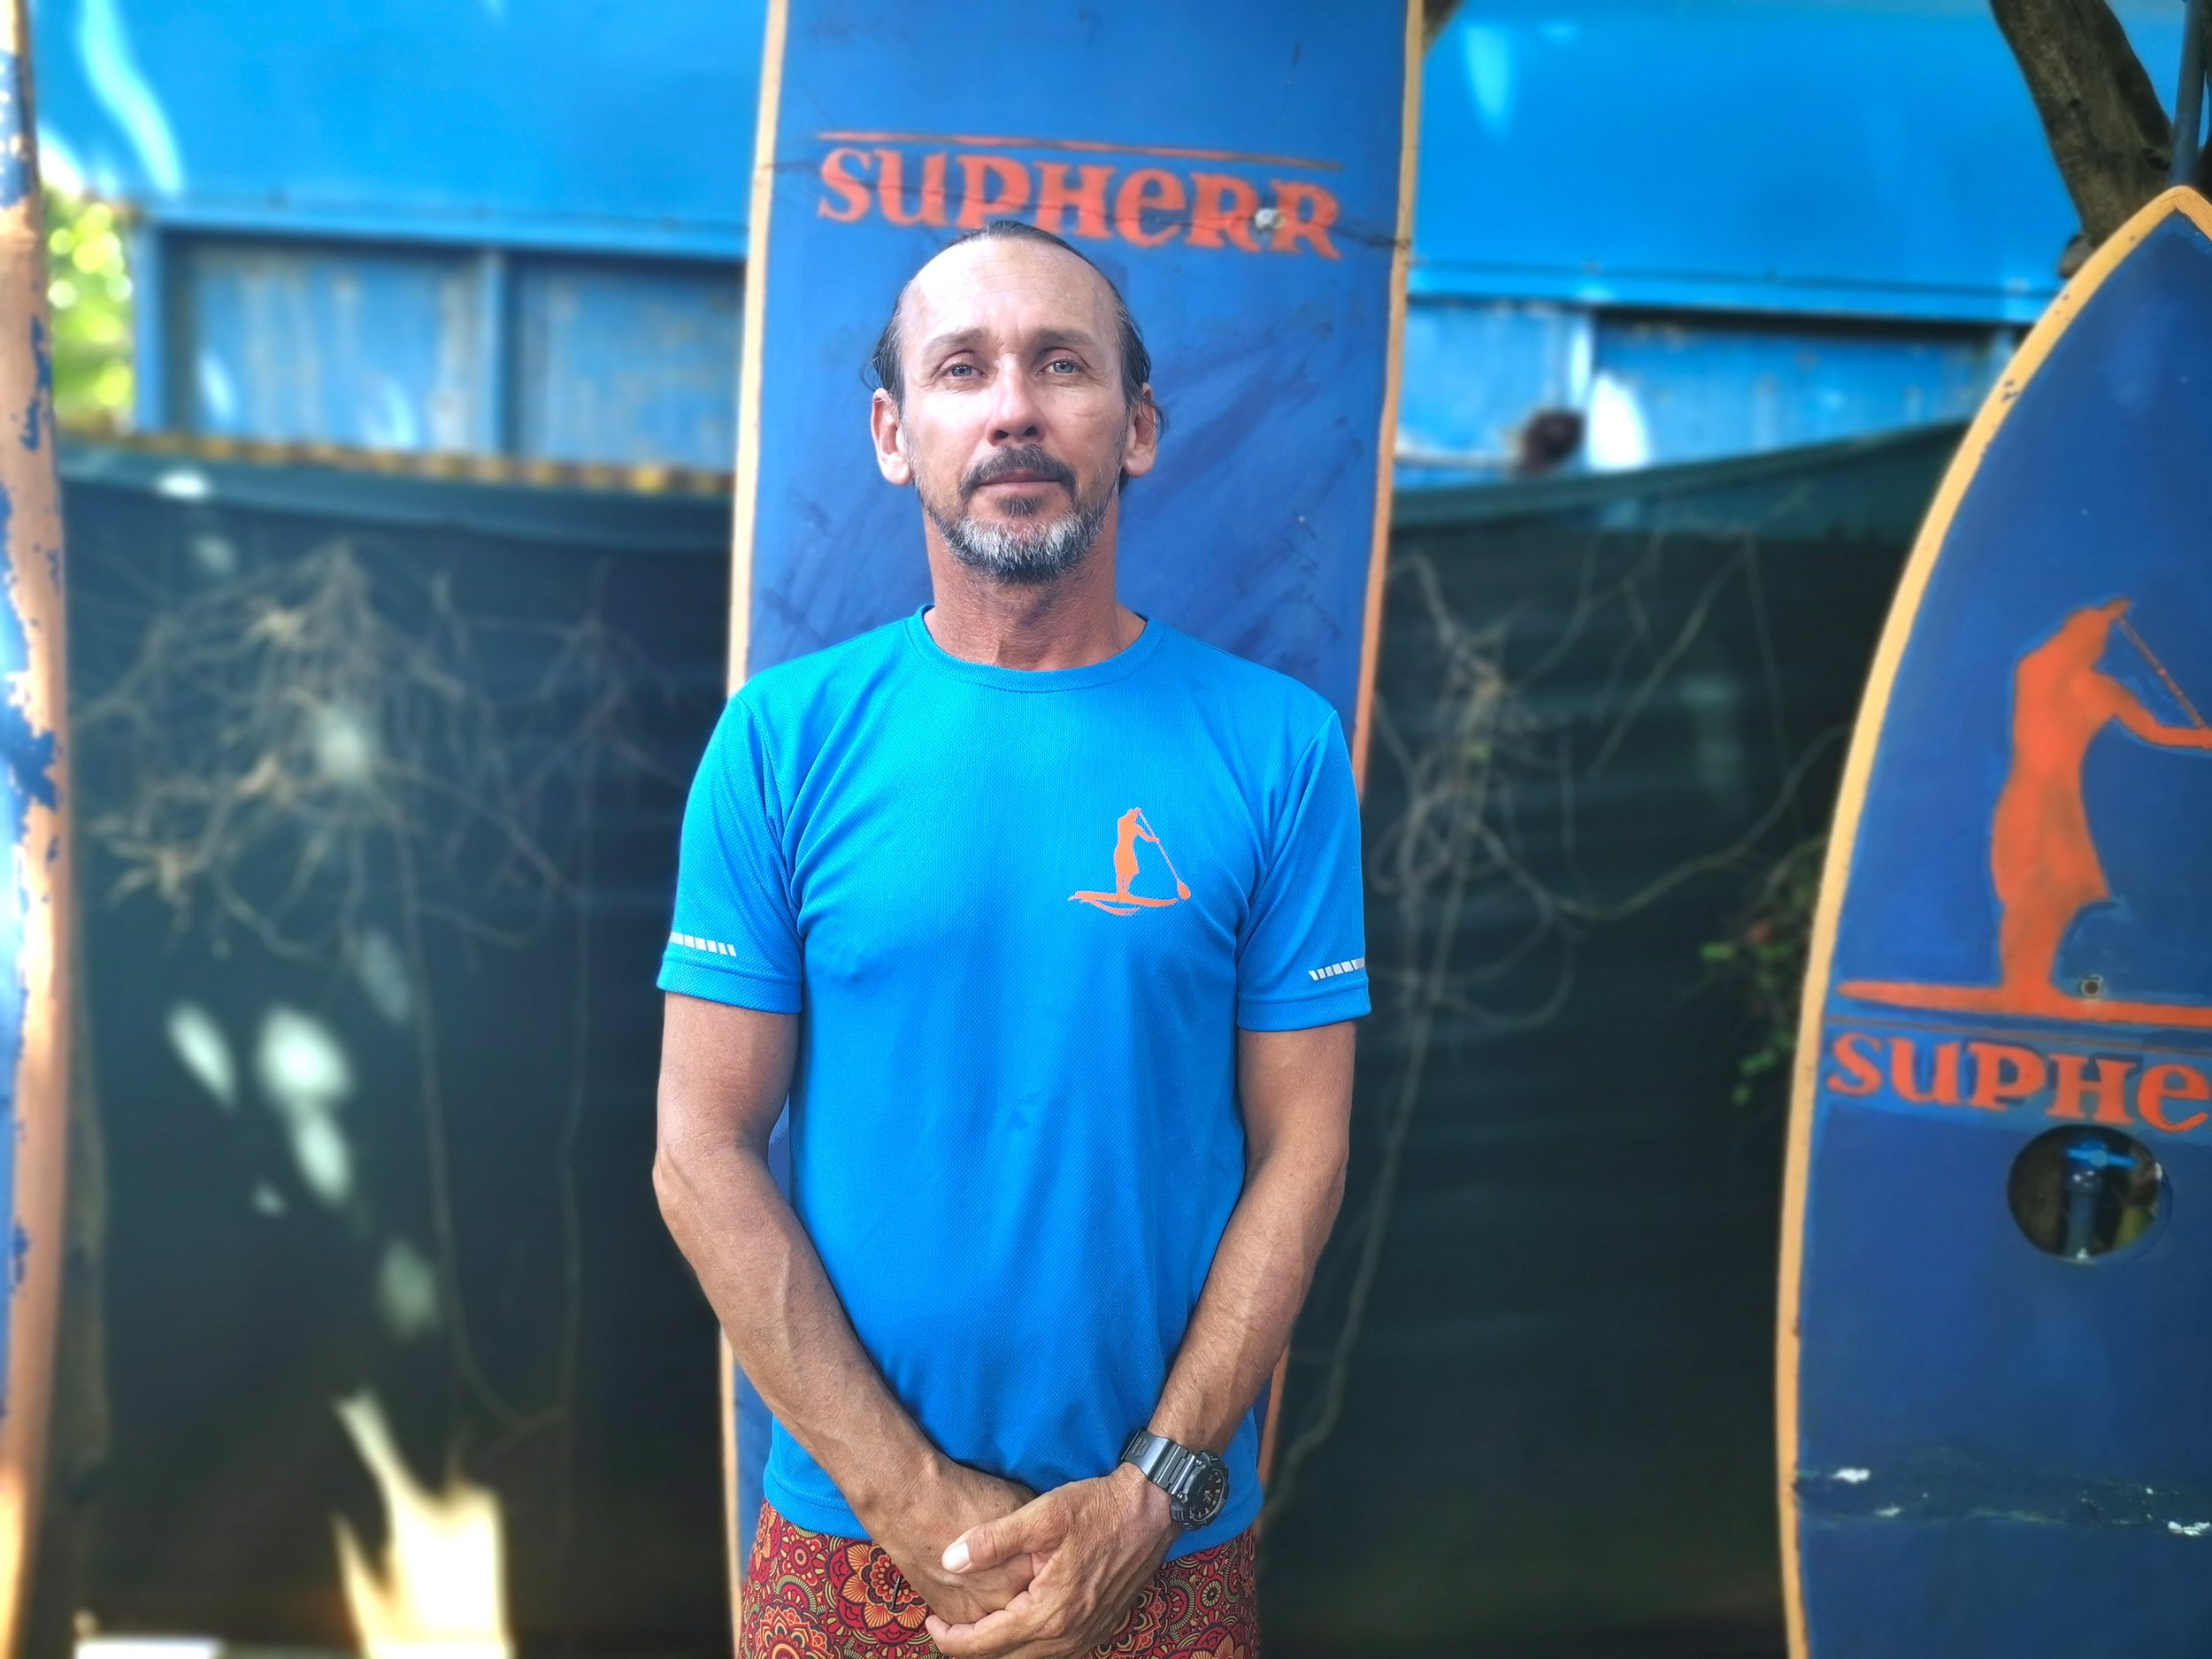 - Our instructor in Chief has more than 20 years of lifeguard experience and for many years was in charge of the safety of the swimmers of the open water competition in Punta Leona.